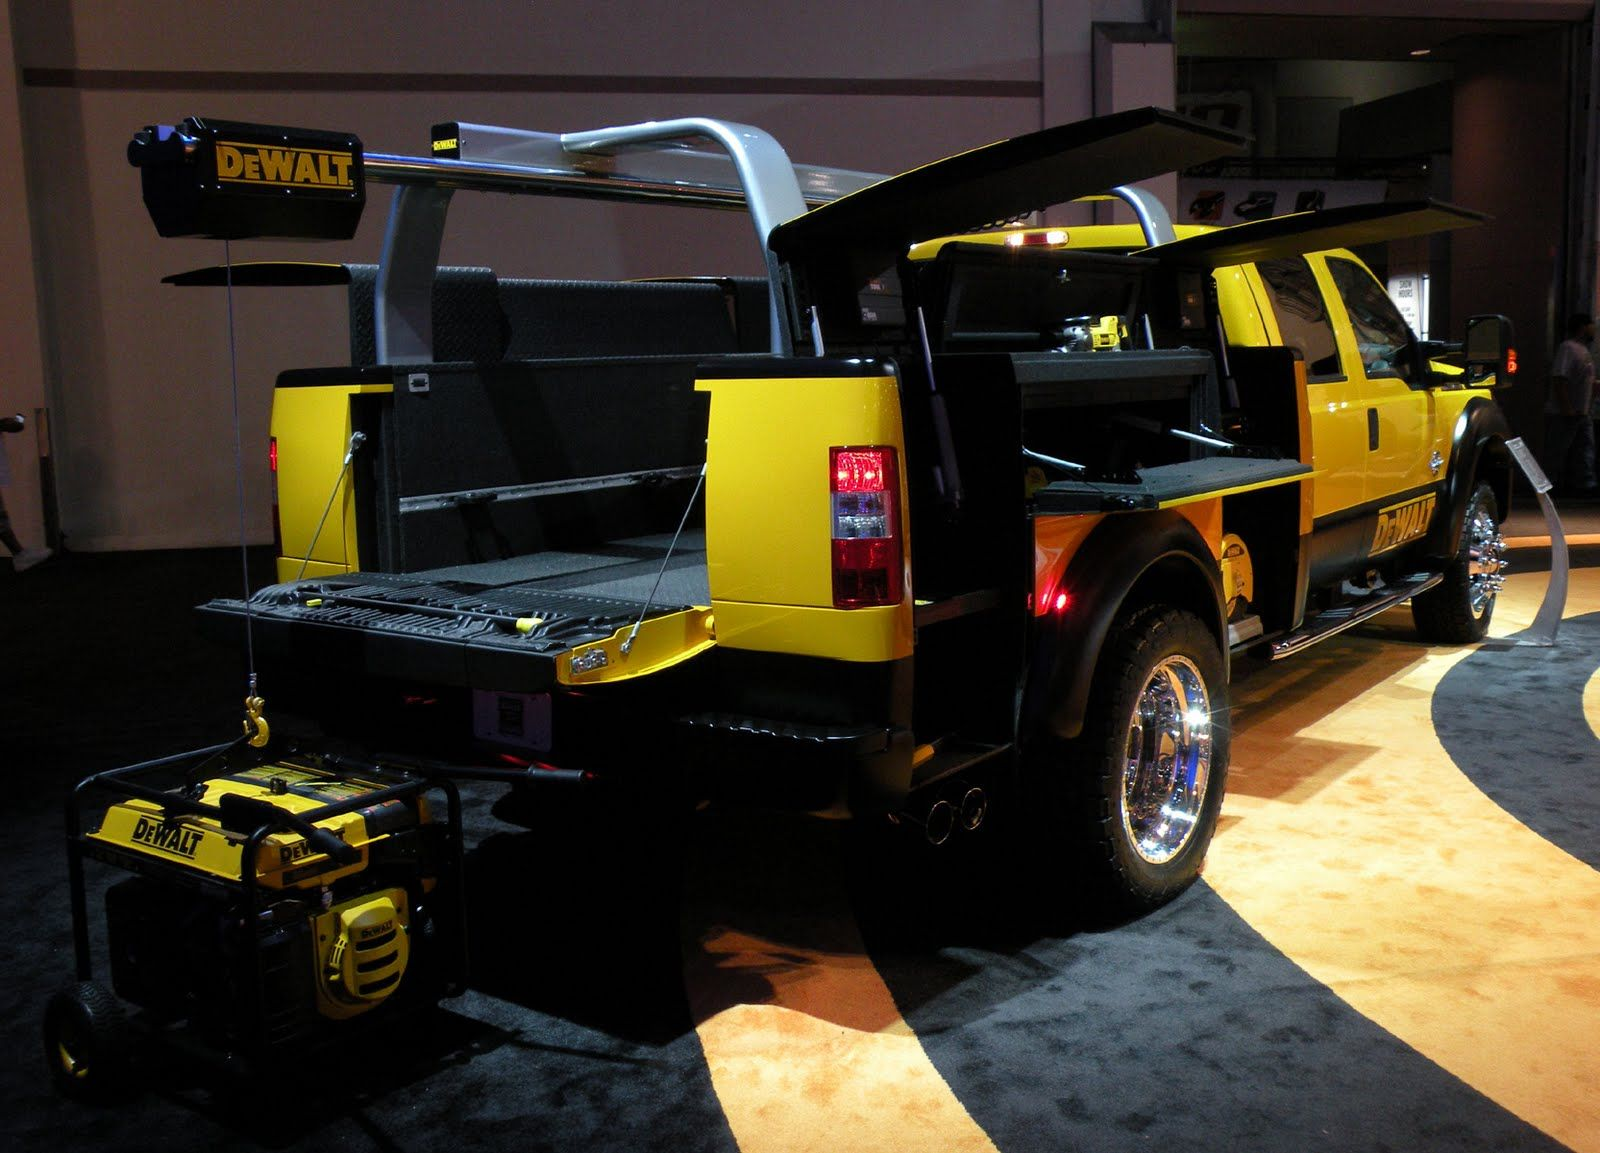 Just a car guy The DeWalt truck at SEMA... wow. Pickup